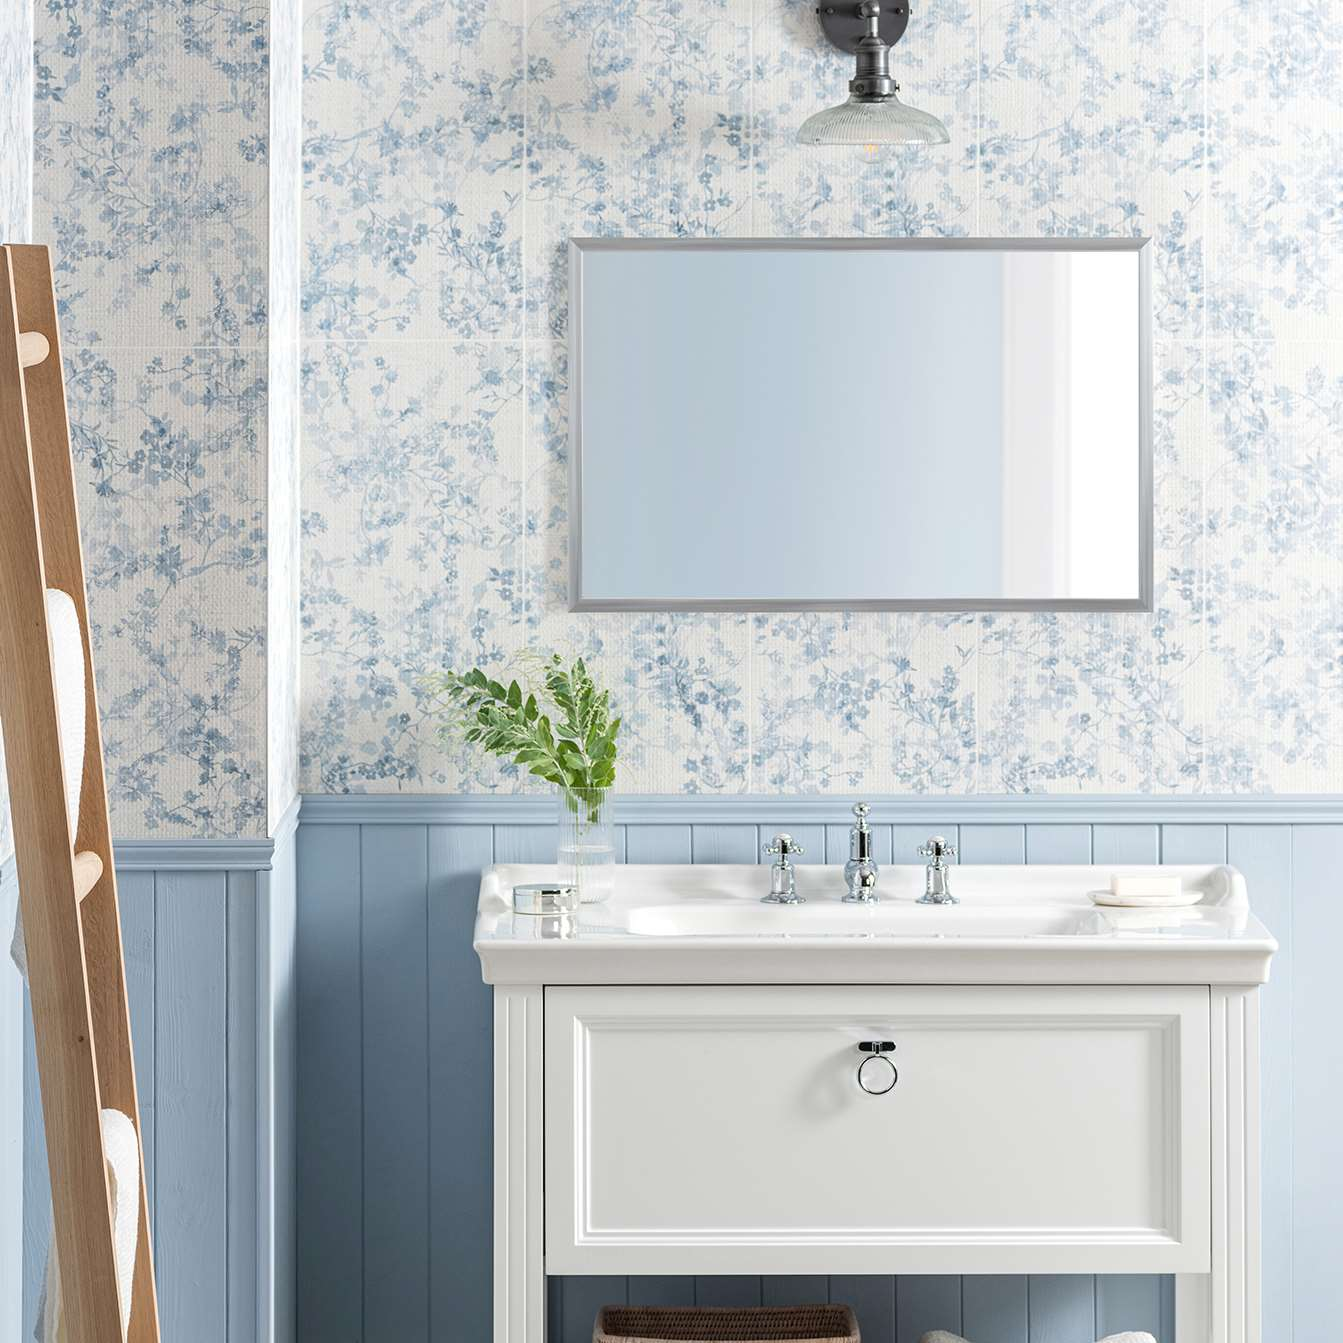 Fabulous patterned wall tiles - our newest collection!